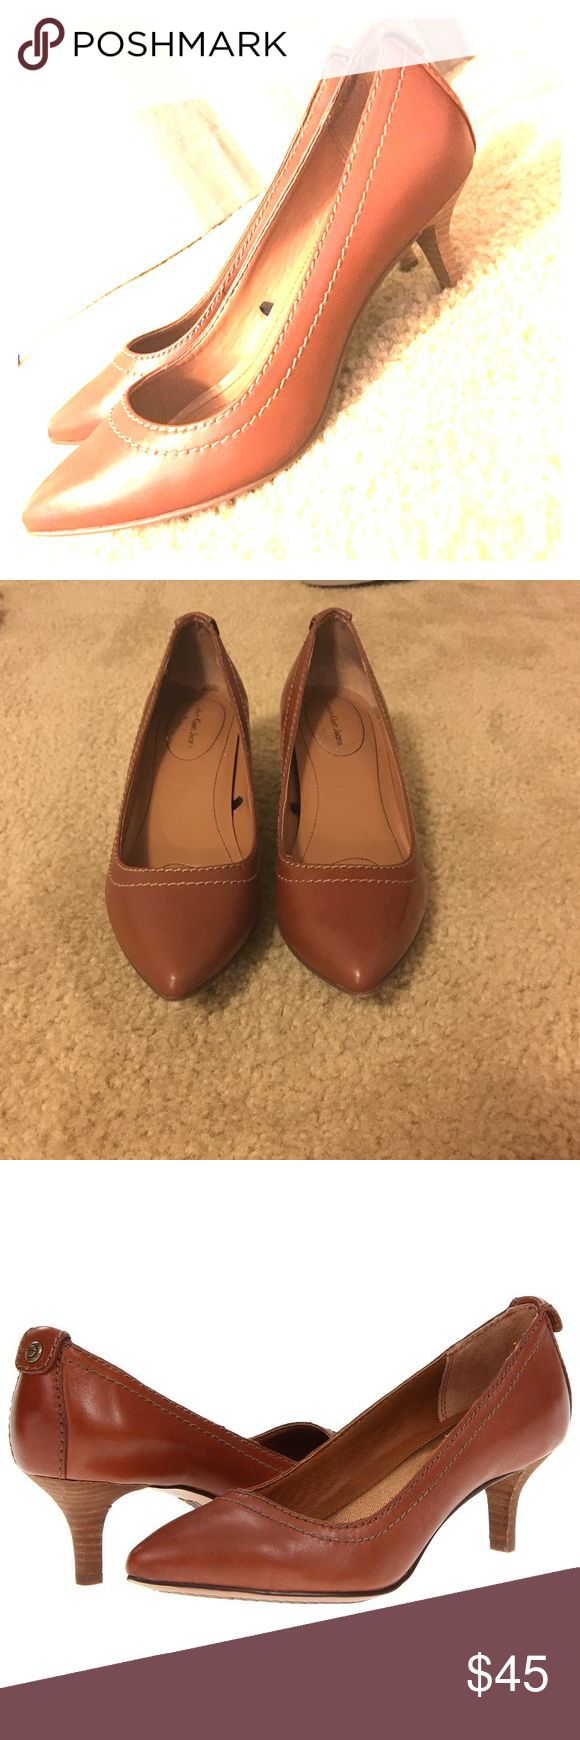 Calvin Klein Kaleigh Pump - Size 7. Worn twice. Adorable Calvin Klein pump perfect for work. Only reason I'm selling them is because the size was marked wrong in the store. Great quality! Calvin Klein Shoes Heels